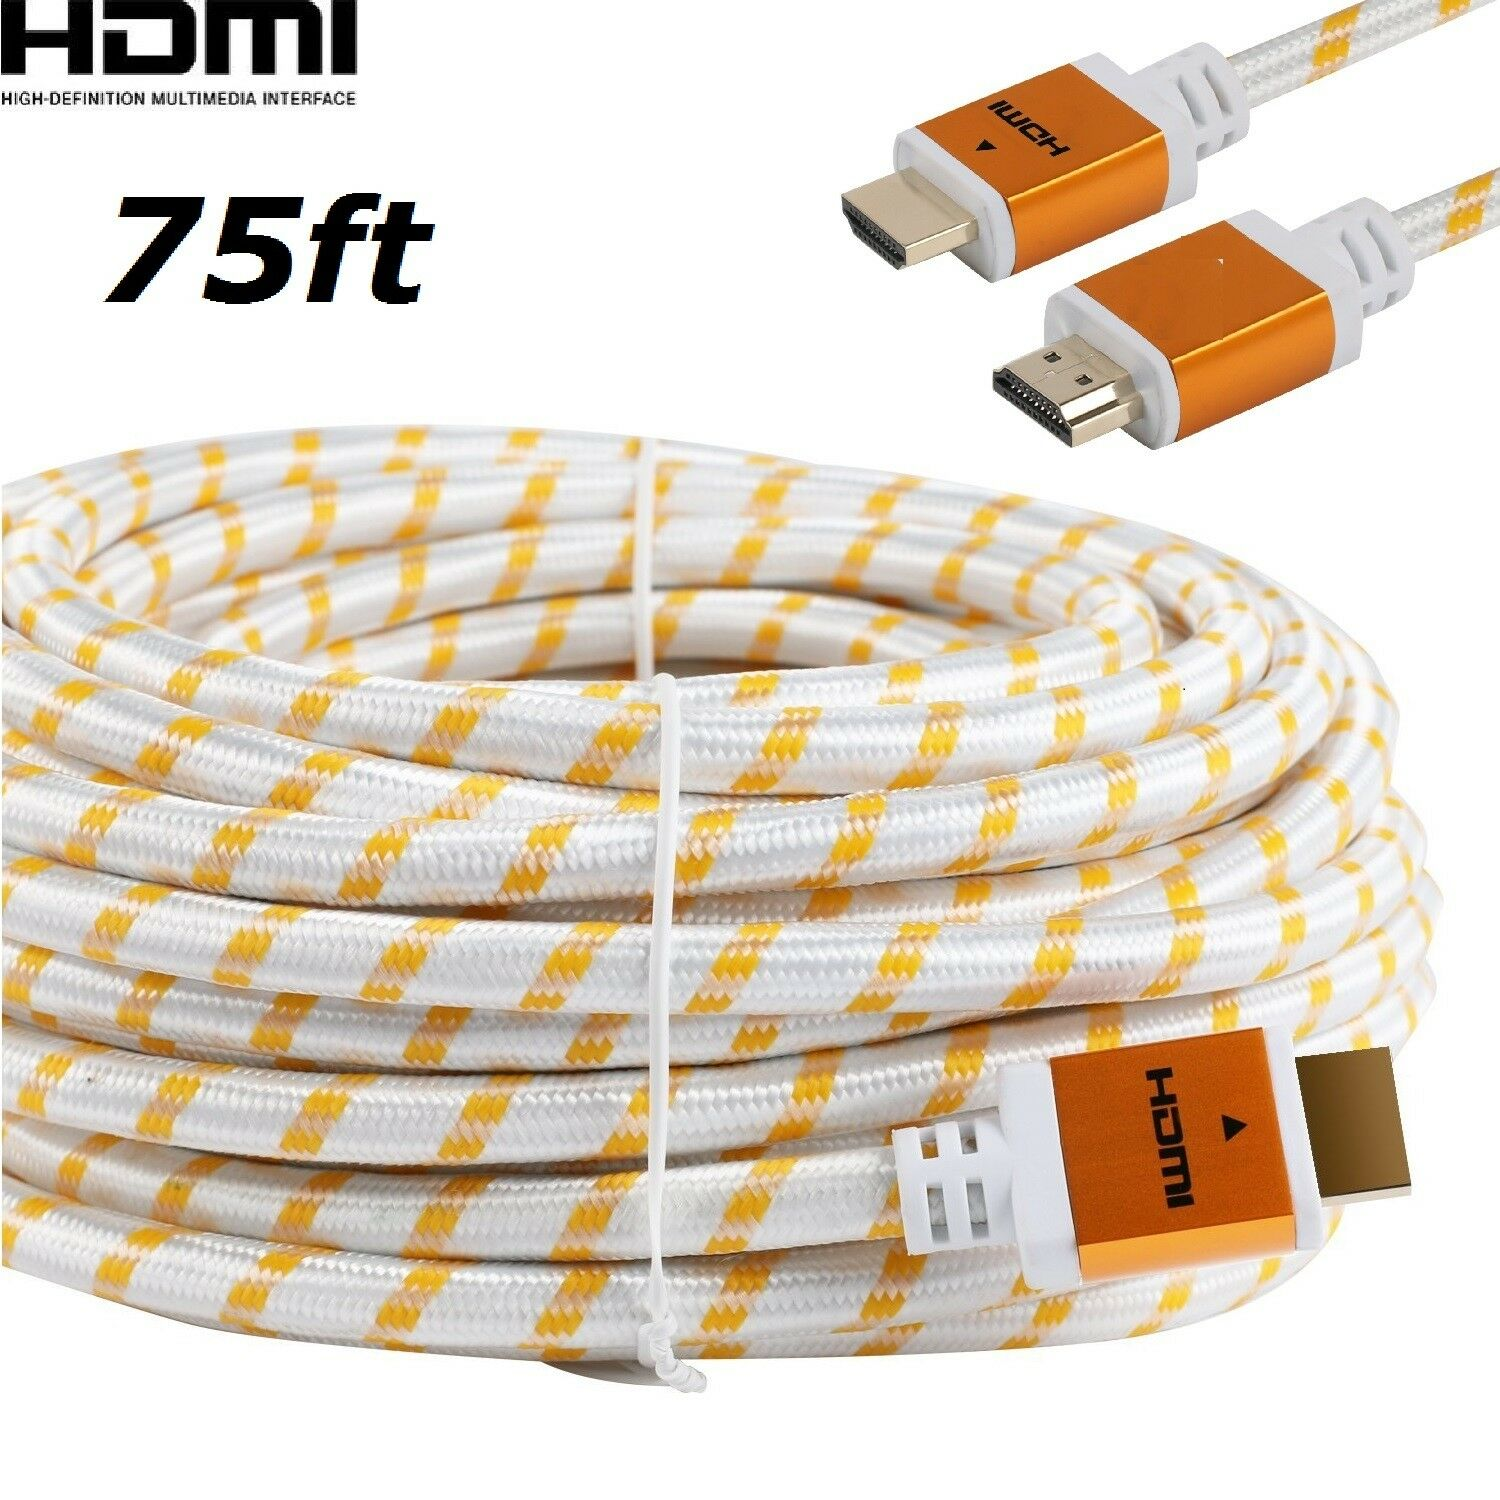 PREMIUM 75feet HDMI CABLE Cord 75FT For BLURAY 3D DVD XBOX PS4 HDTV 1080P White Consumer Electronics